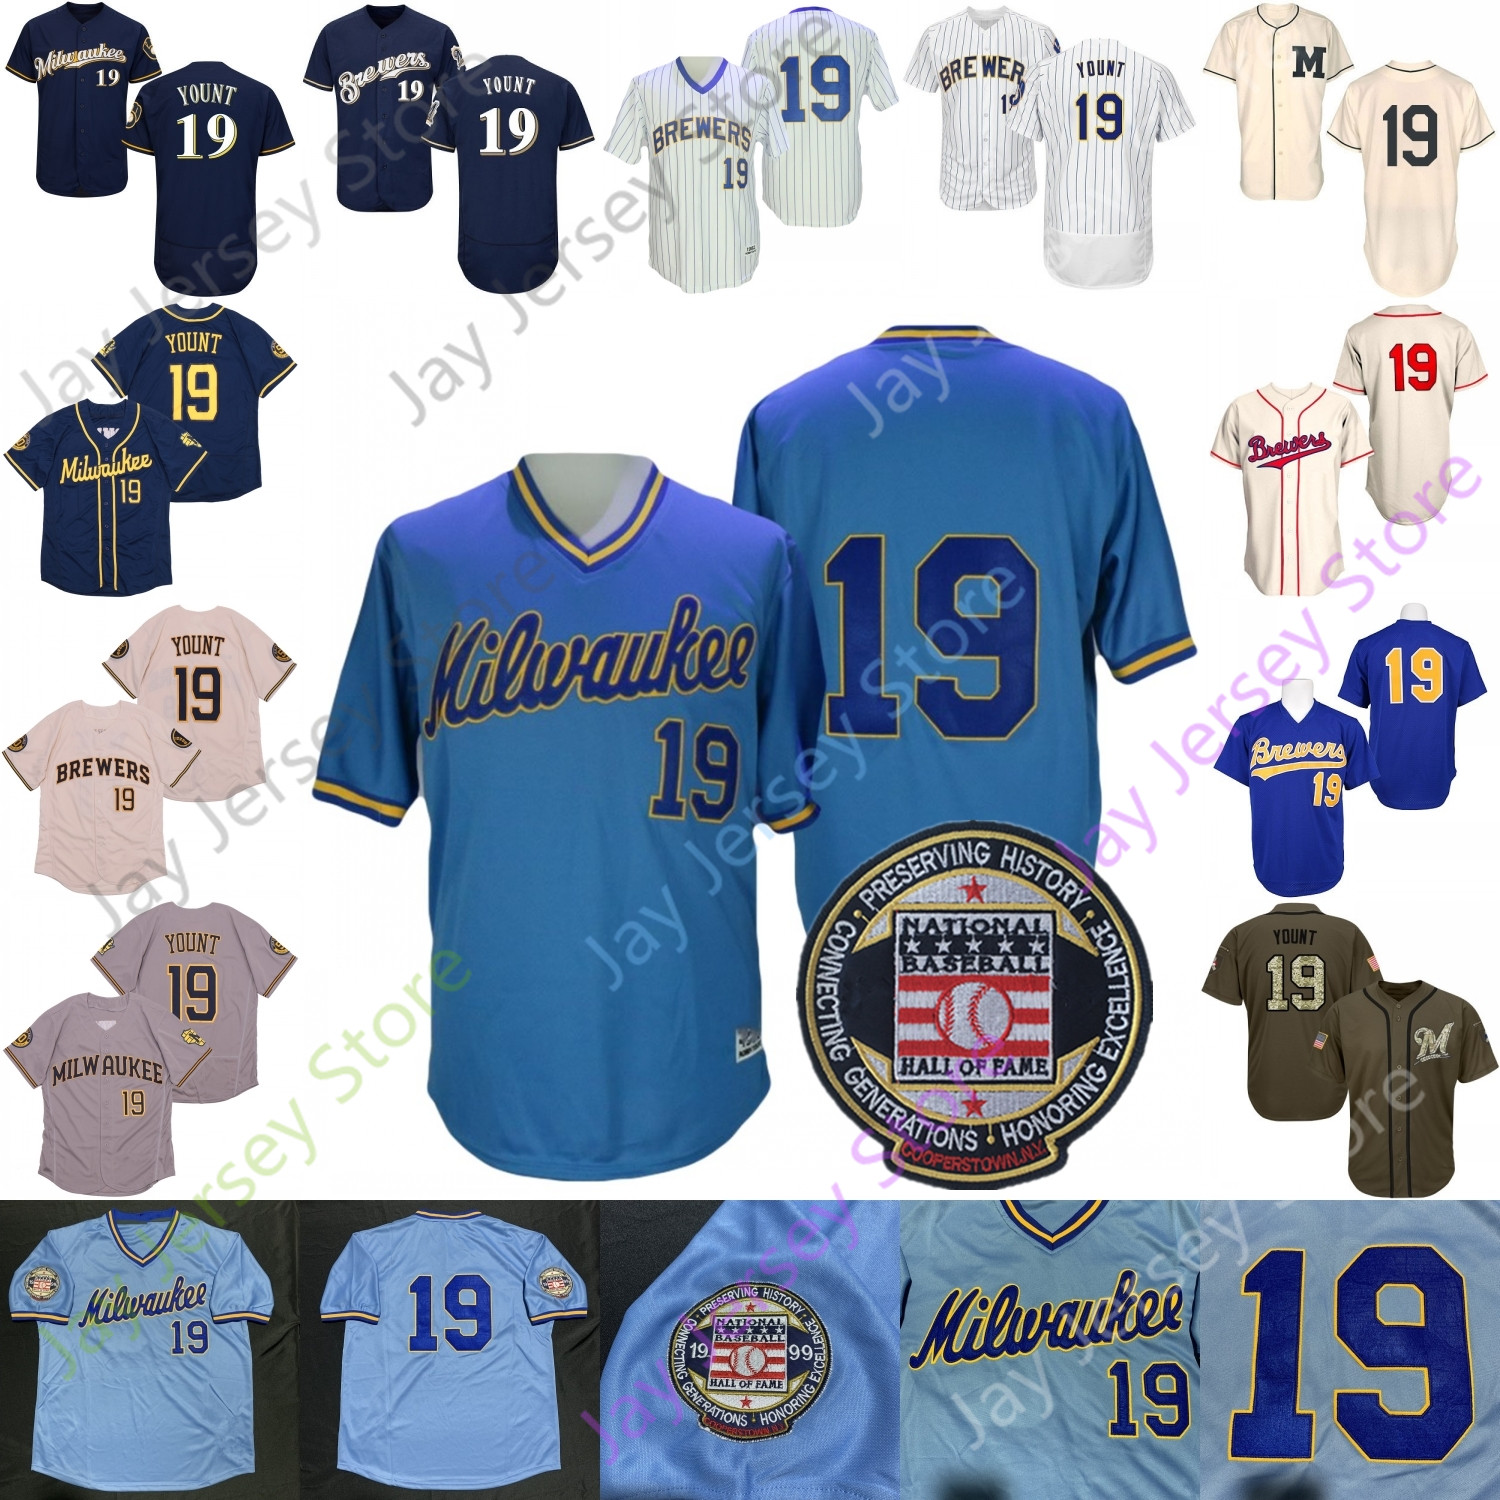 Robin Yount Jersey Hall Of Fame Patch 1982 White Pinstripe Salute to Service Blue Mesh BP Cooperstown White Pinstripe Cream Red Navy Player I II